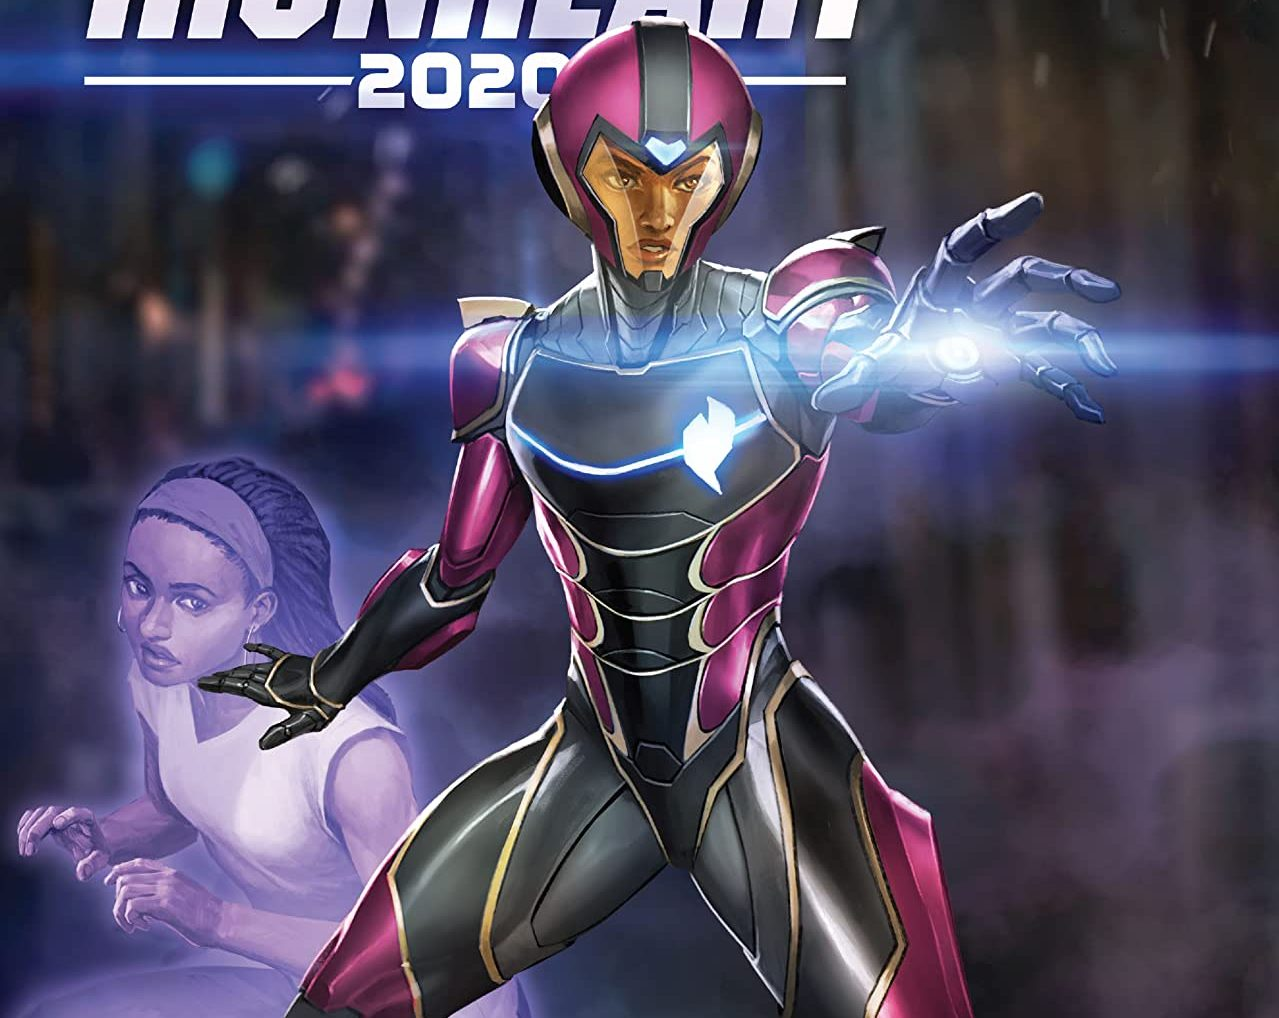 Ironheart cant wear her super suit as she's too young, but that won't stop her from being a hero.